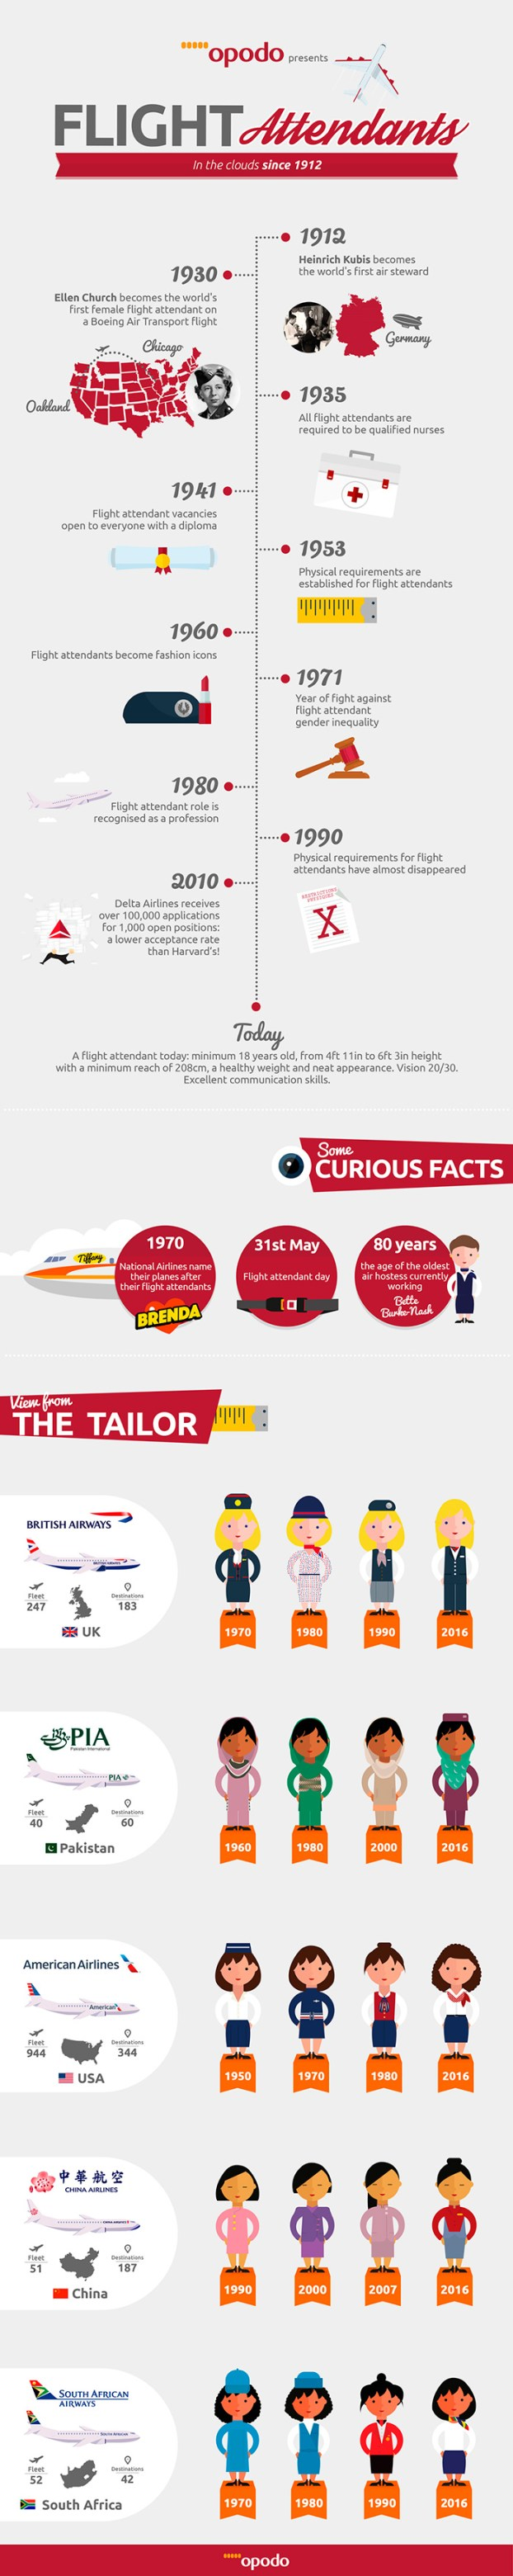 infographic-flight-attendants2-1